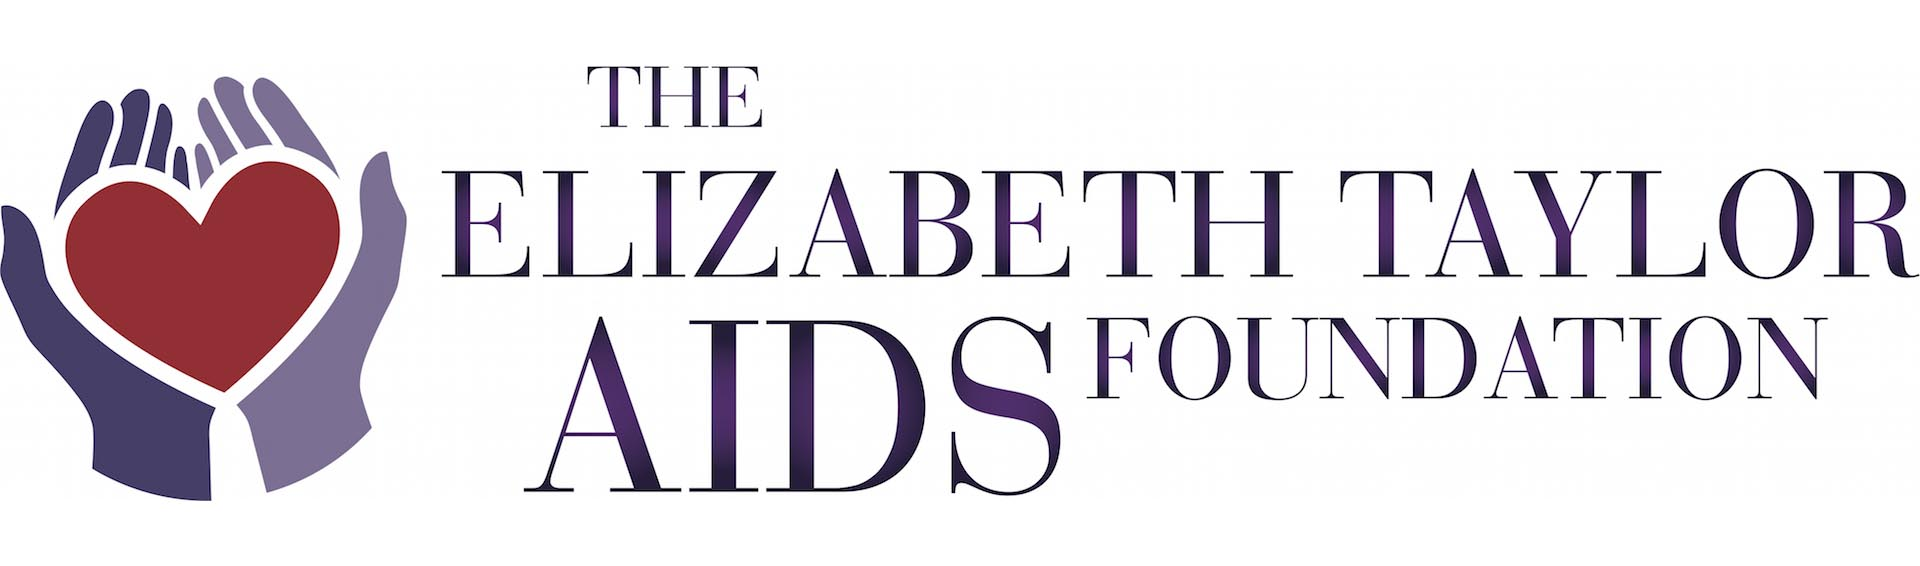 Elizabeth Taylor AIDS Foundation